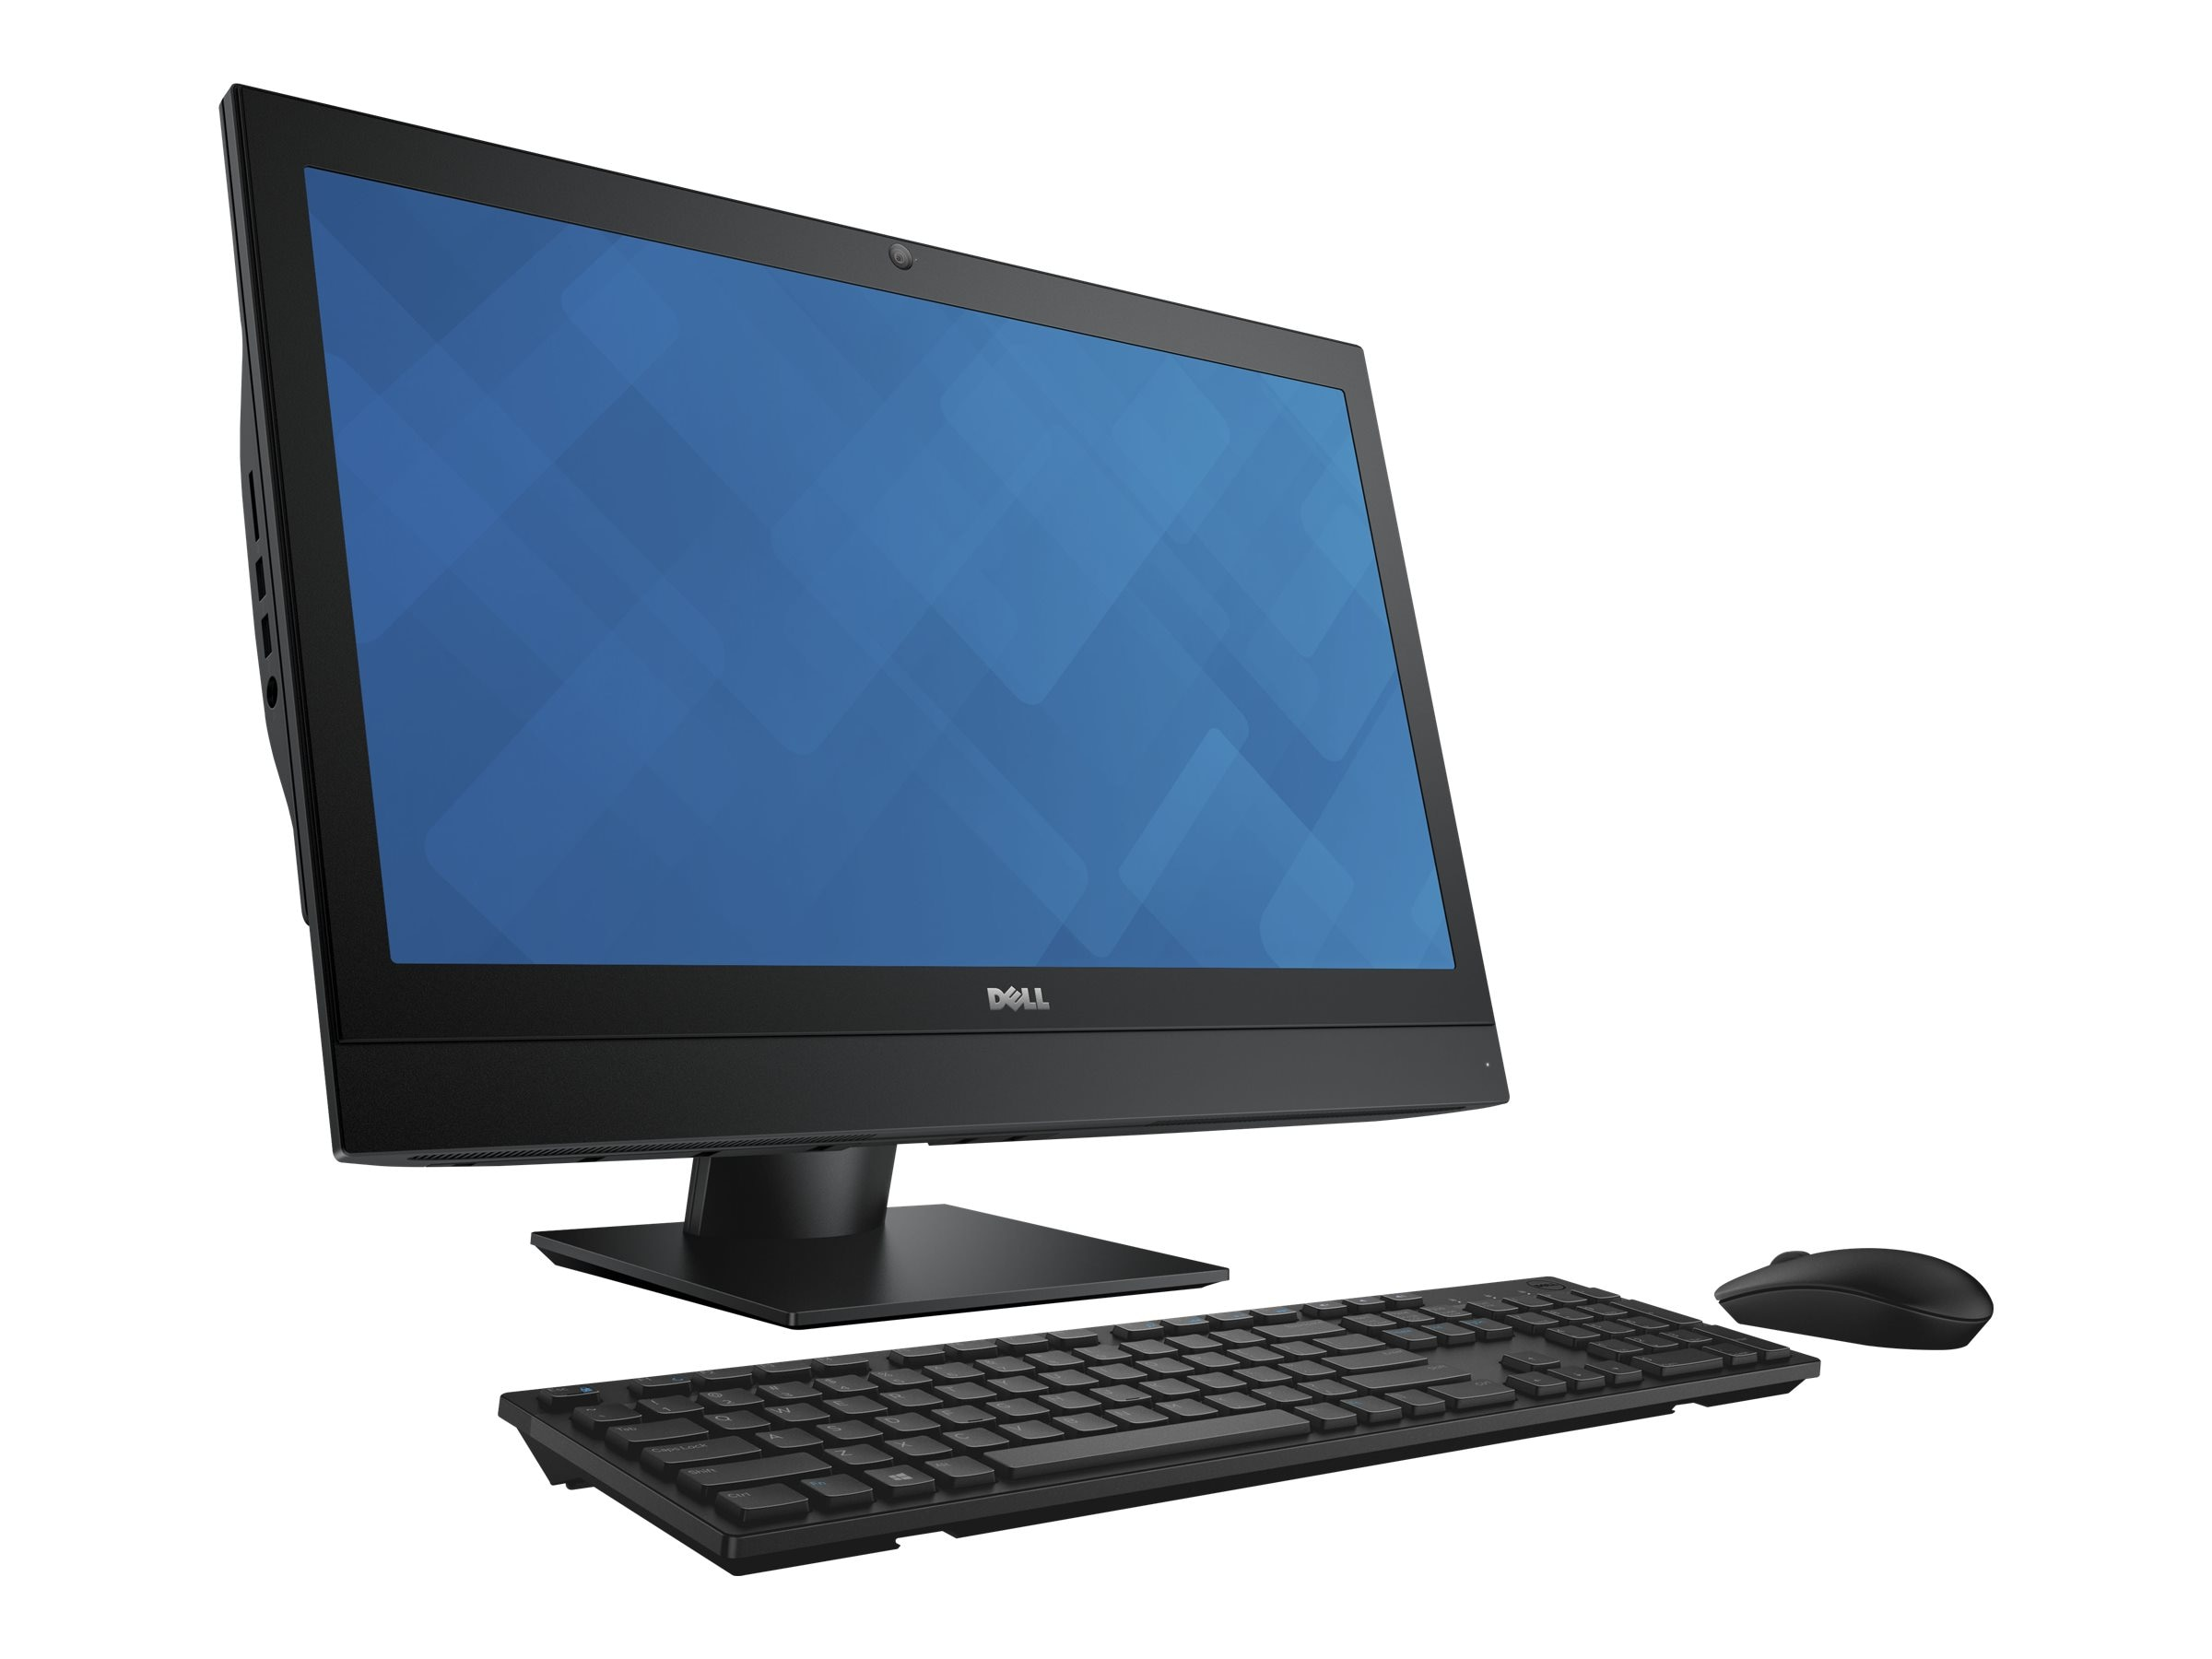 Dell OptiPlex 7440 AIO Core i7-6700 3.4GHz 8GB 256GB PCIe SSD DVD+RW GbE ac BT 23.8 FHD W10P64, HCVVP